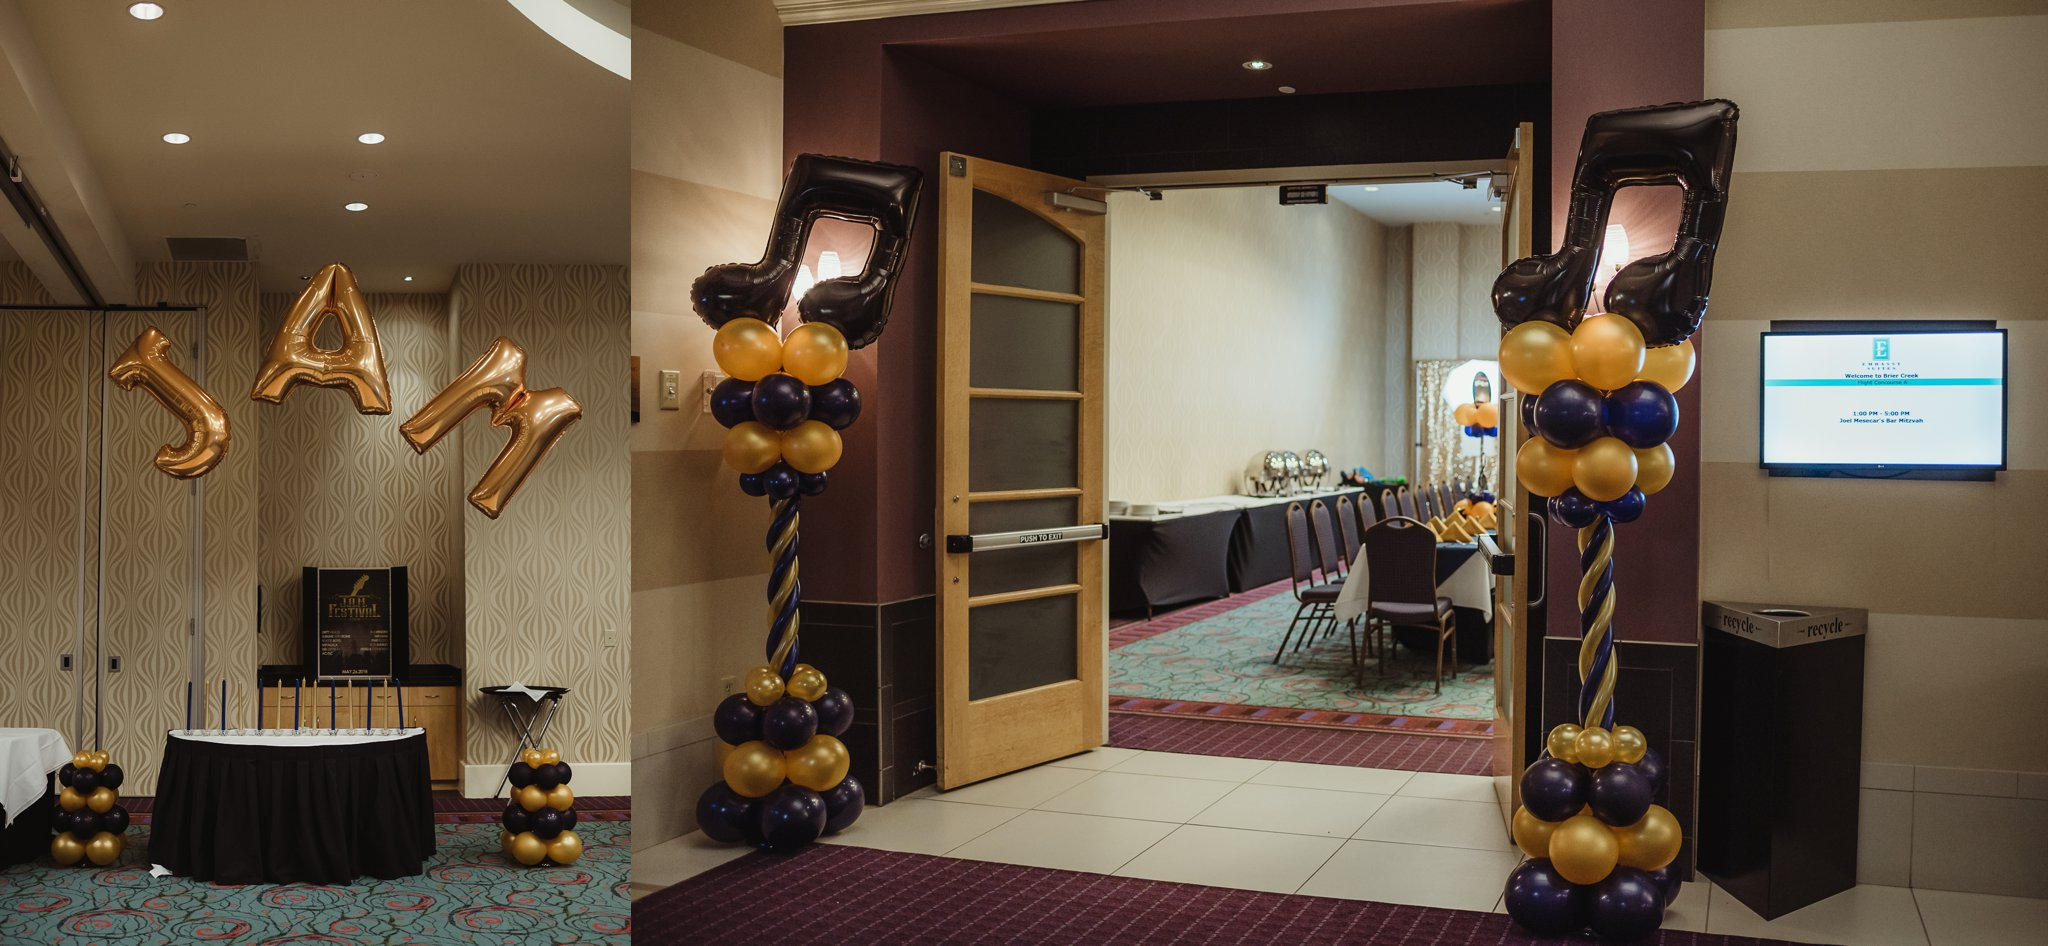 Details of Joel's mitzvah celebration party at Embassy Suites in Raleigh, North Carolina, include ballons with his initials and a music note entryway, images by Rose Trail Images.